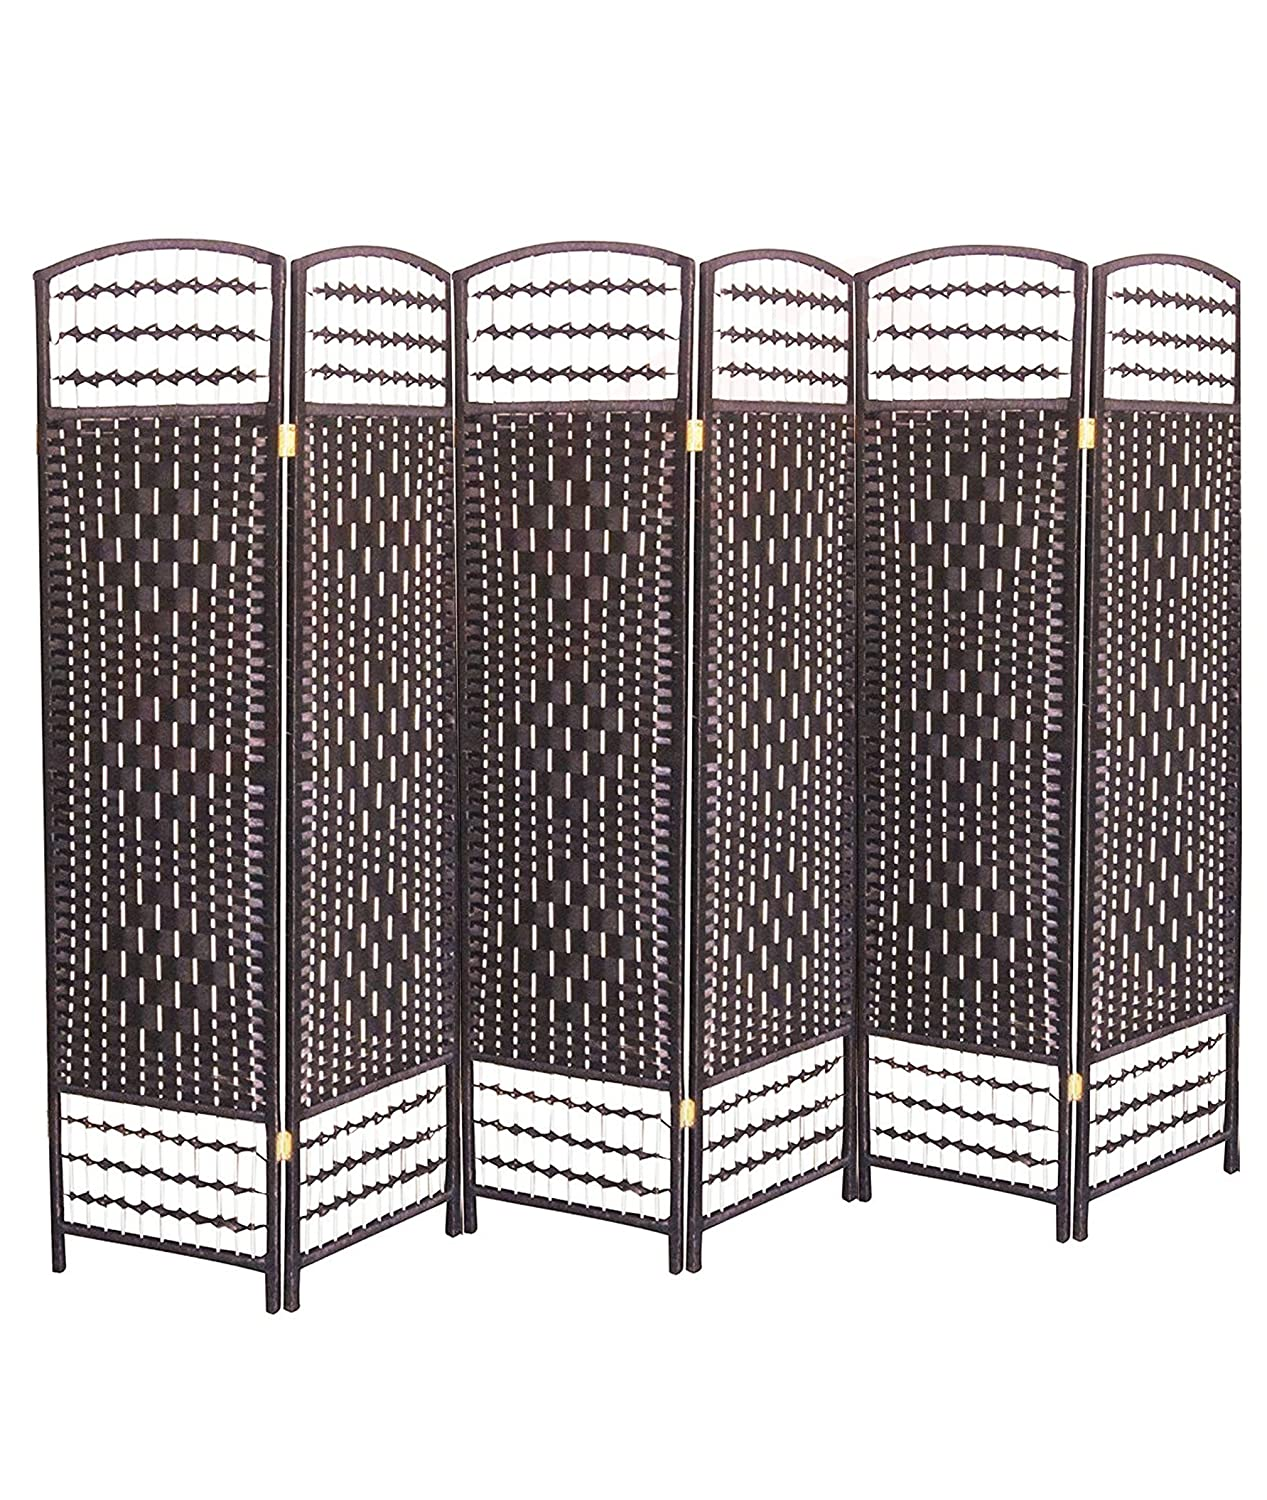 Ballino Hand Made Wicker Room Divider/Partition/Privacy Screen, Wood, dark Brown, 240 x 5 x 170 cm 3/4/5/6 panel room divider paritions (D brown LTp001 4 panel)